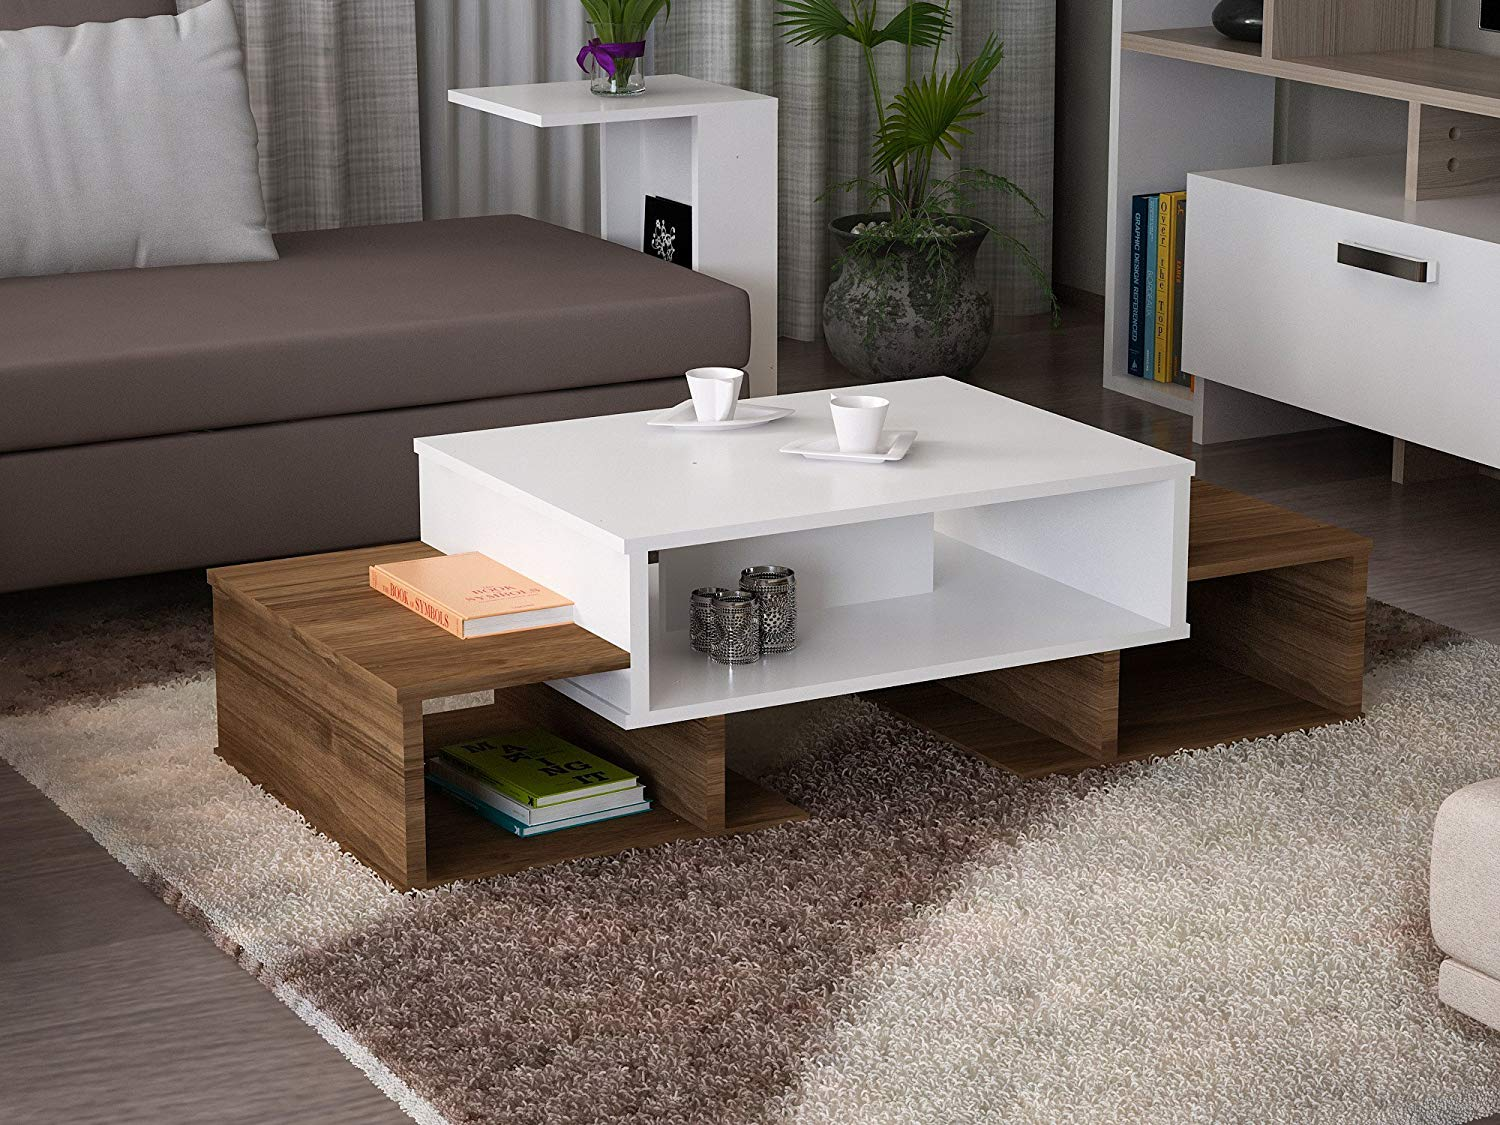 LaModaHome Modern Style Coffee Table Brown-White Modern Coffee Table Wooden Resistant Table Cocktail Table with Storage Best Choice For Quality For Home, Office, Living Room and More